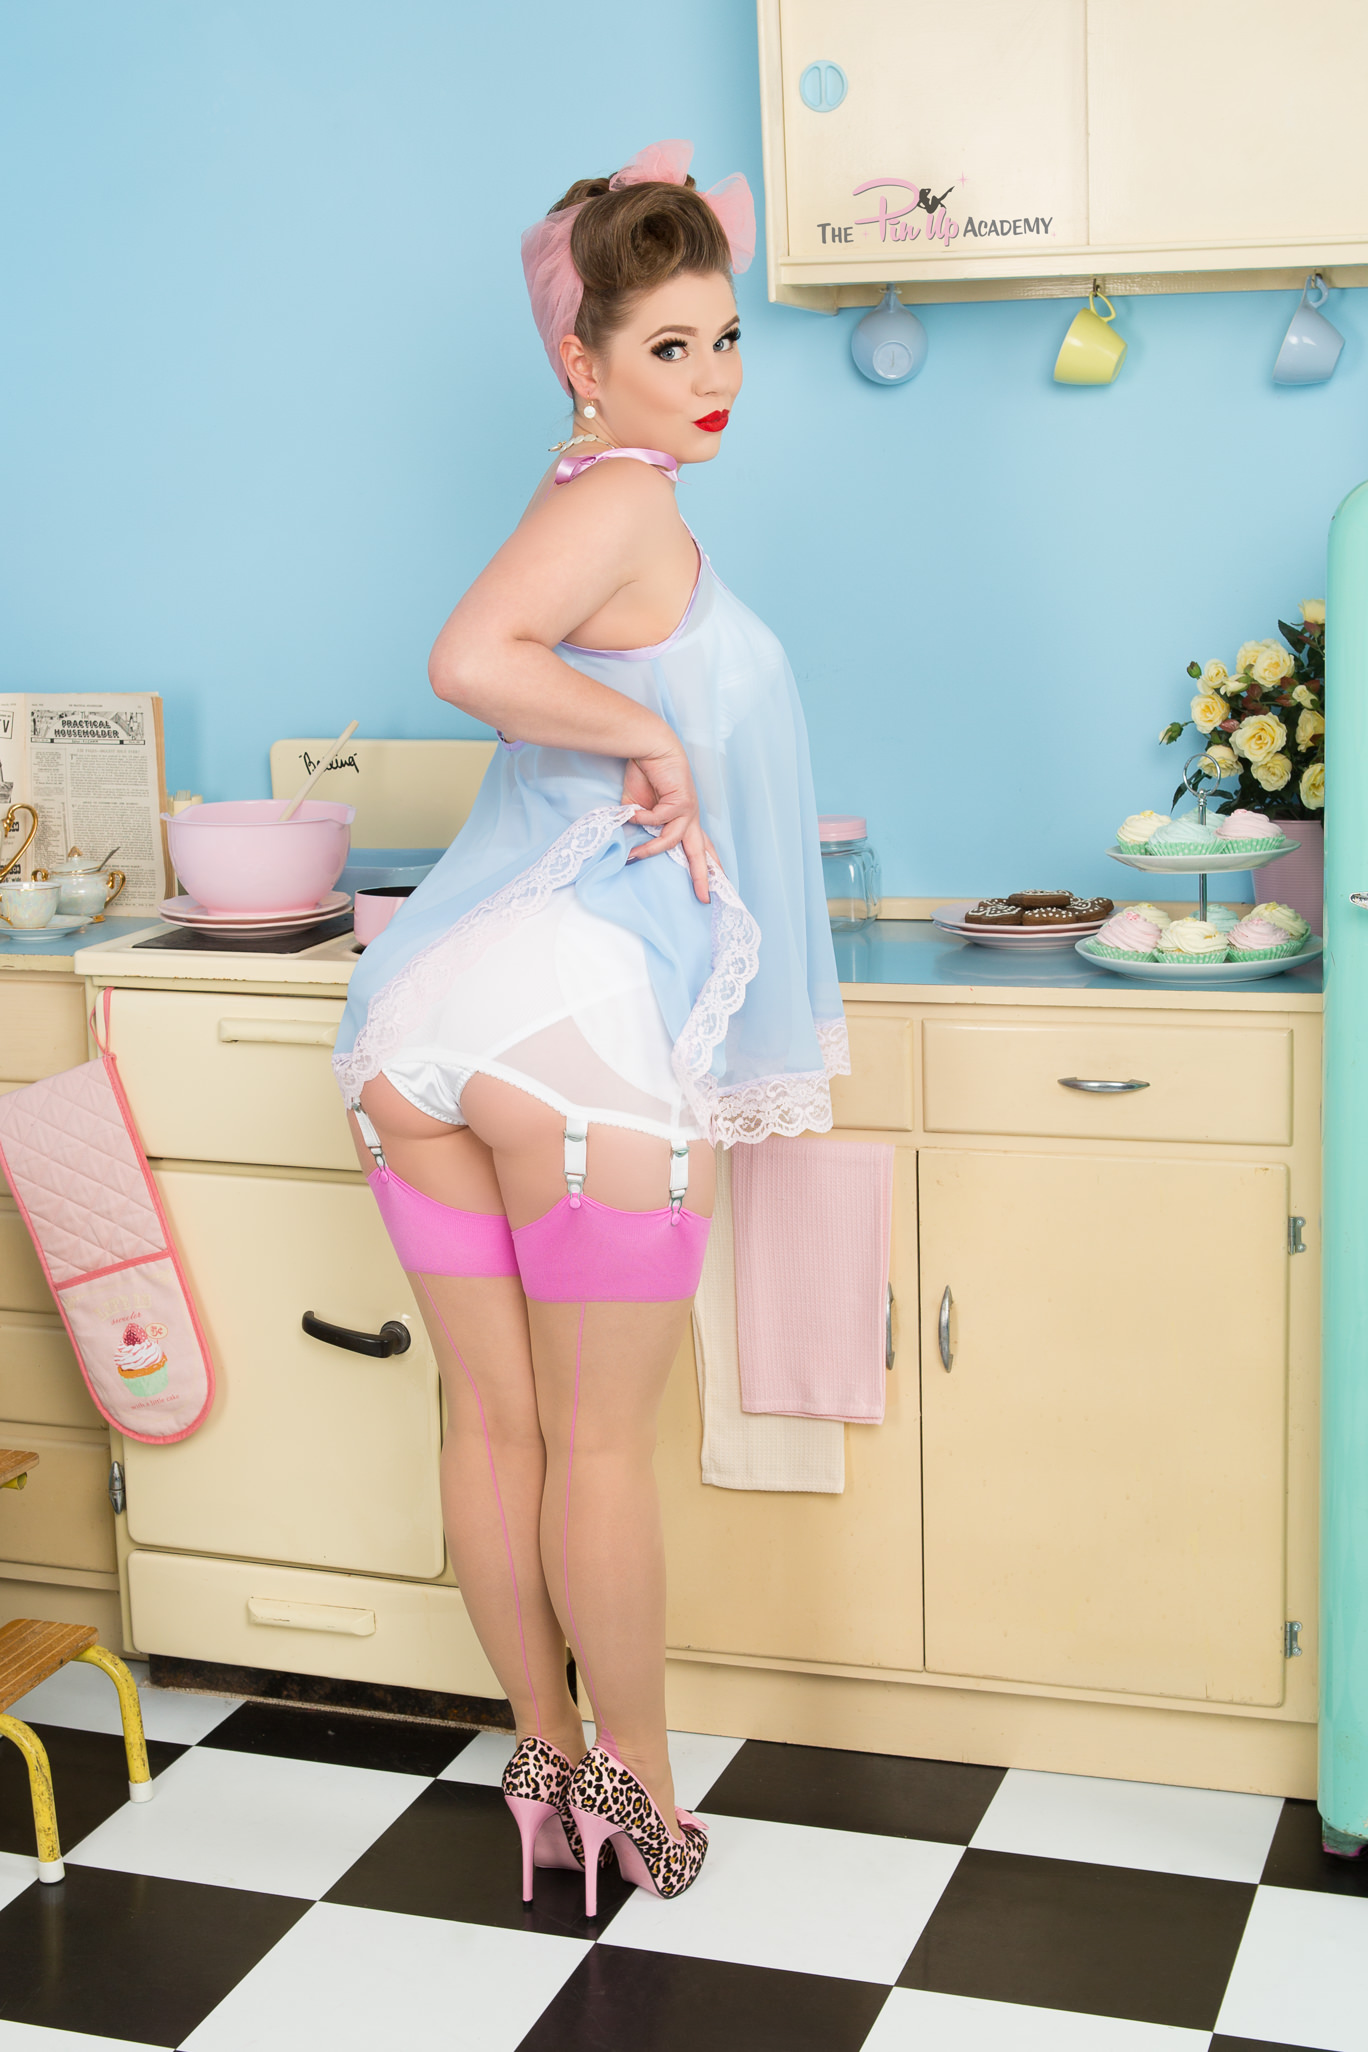 pinup girl in kitchen flashing bottom